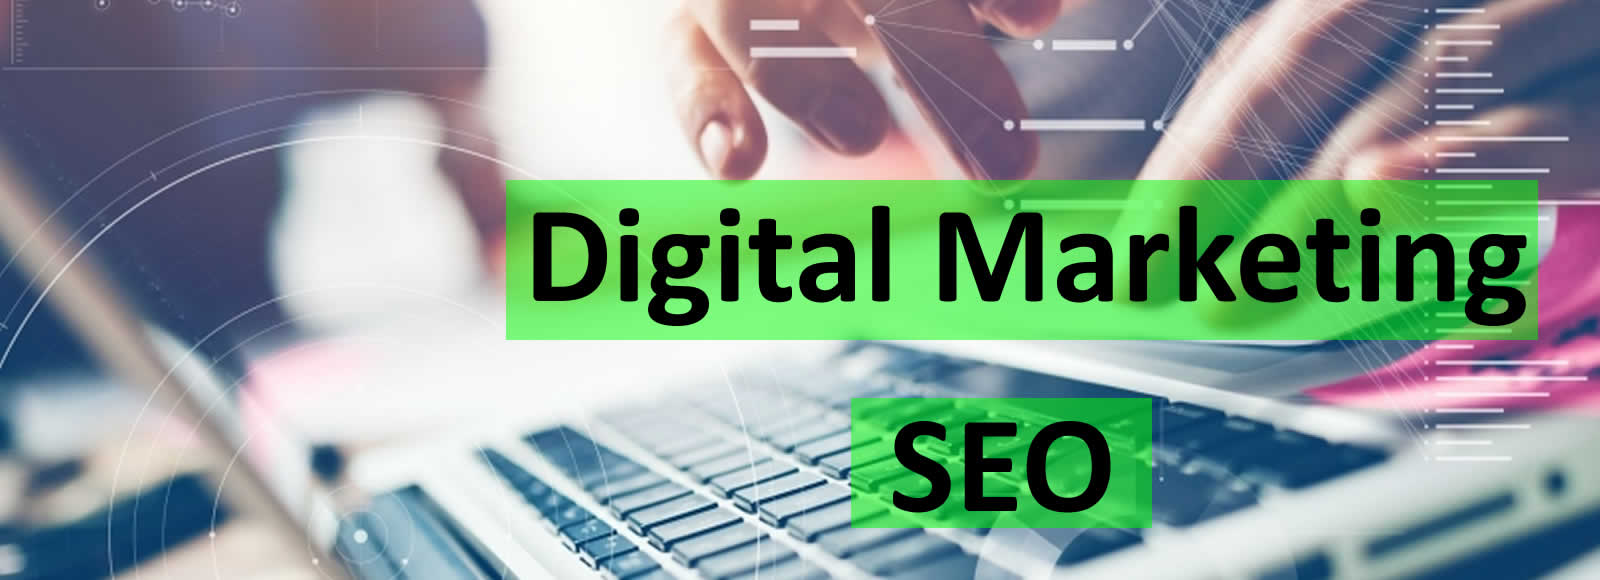 seo company digital marketing deland